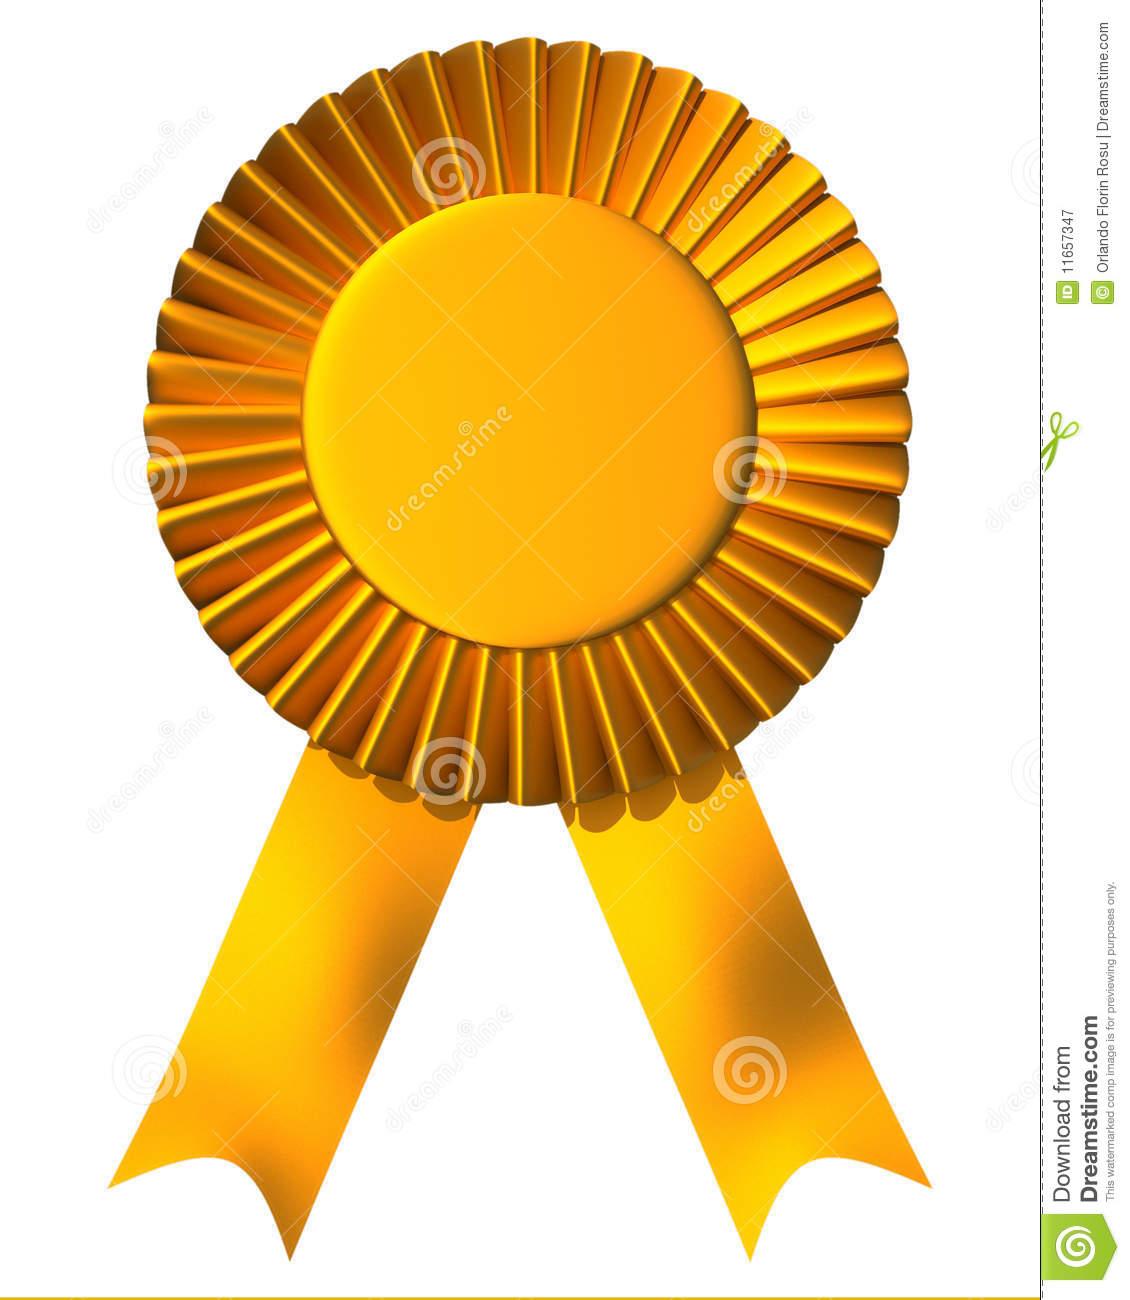 Ribbon First Place Award Royalty Free Stock Photography - Image ...